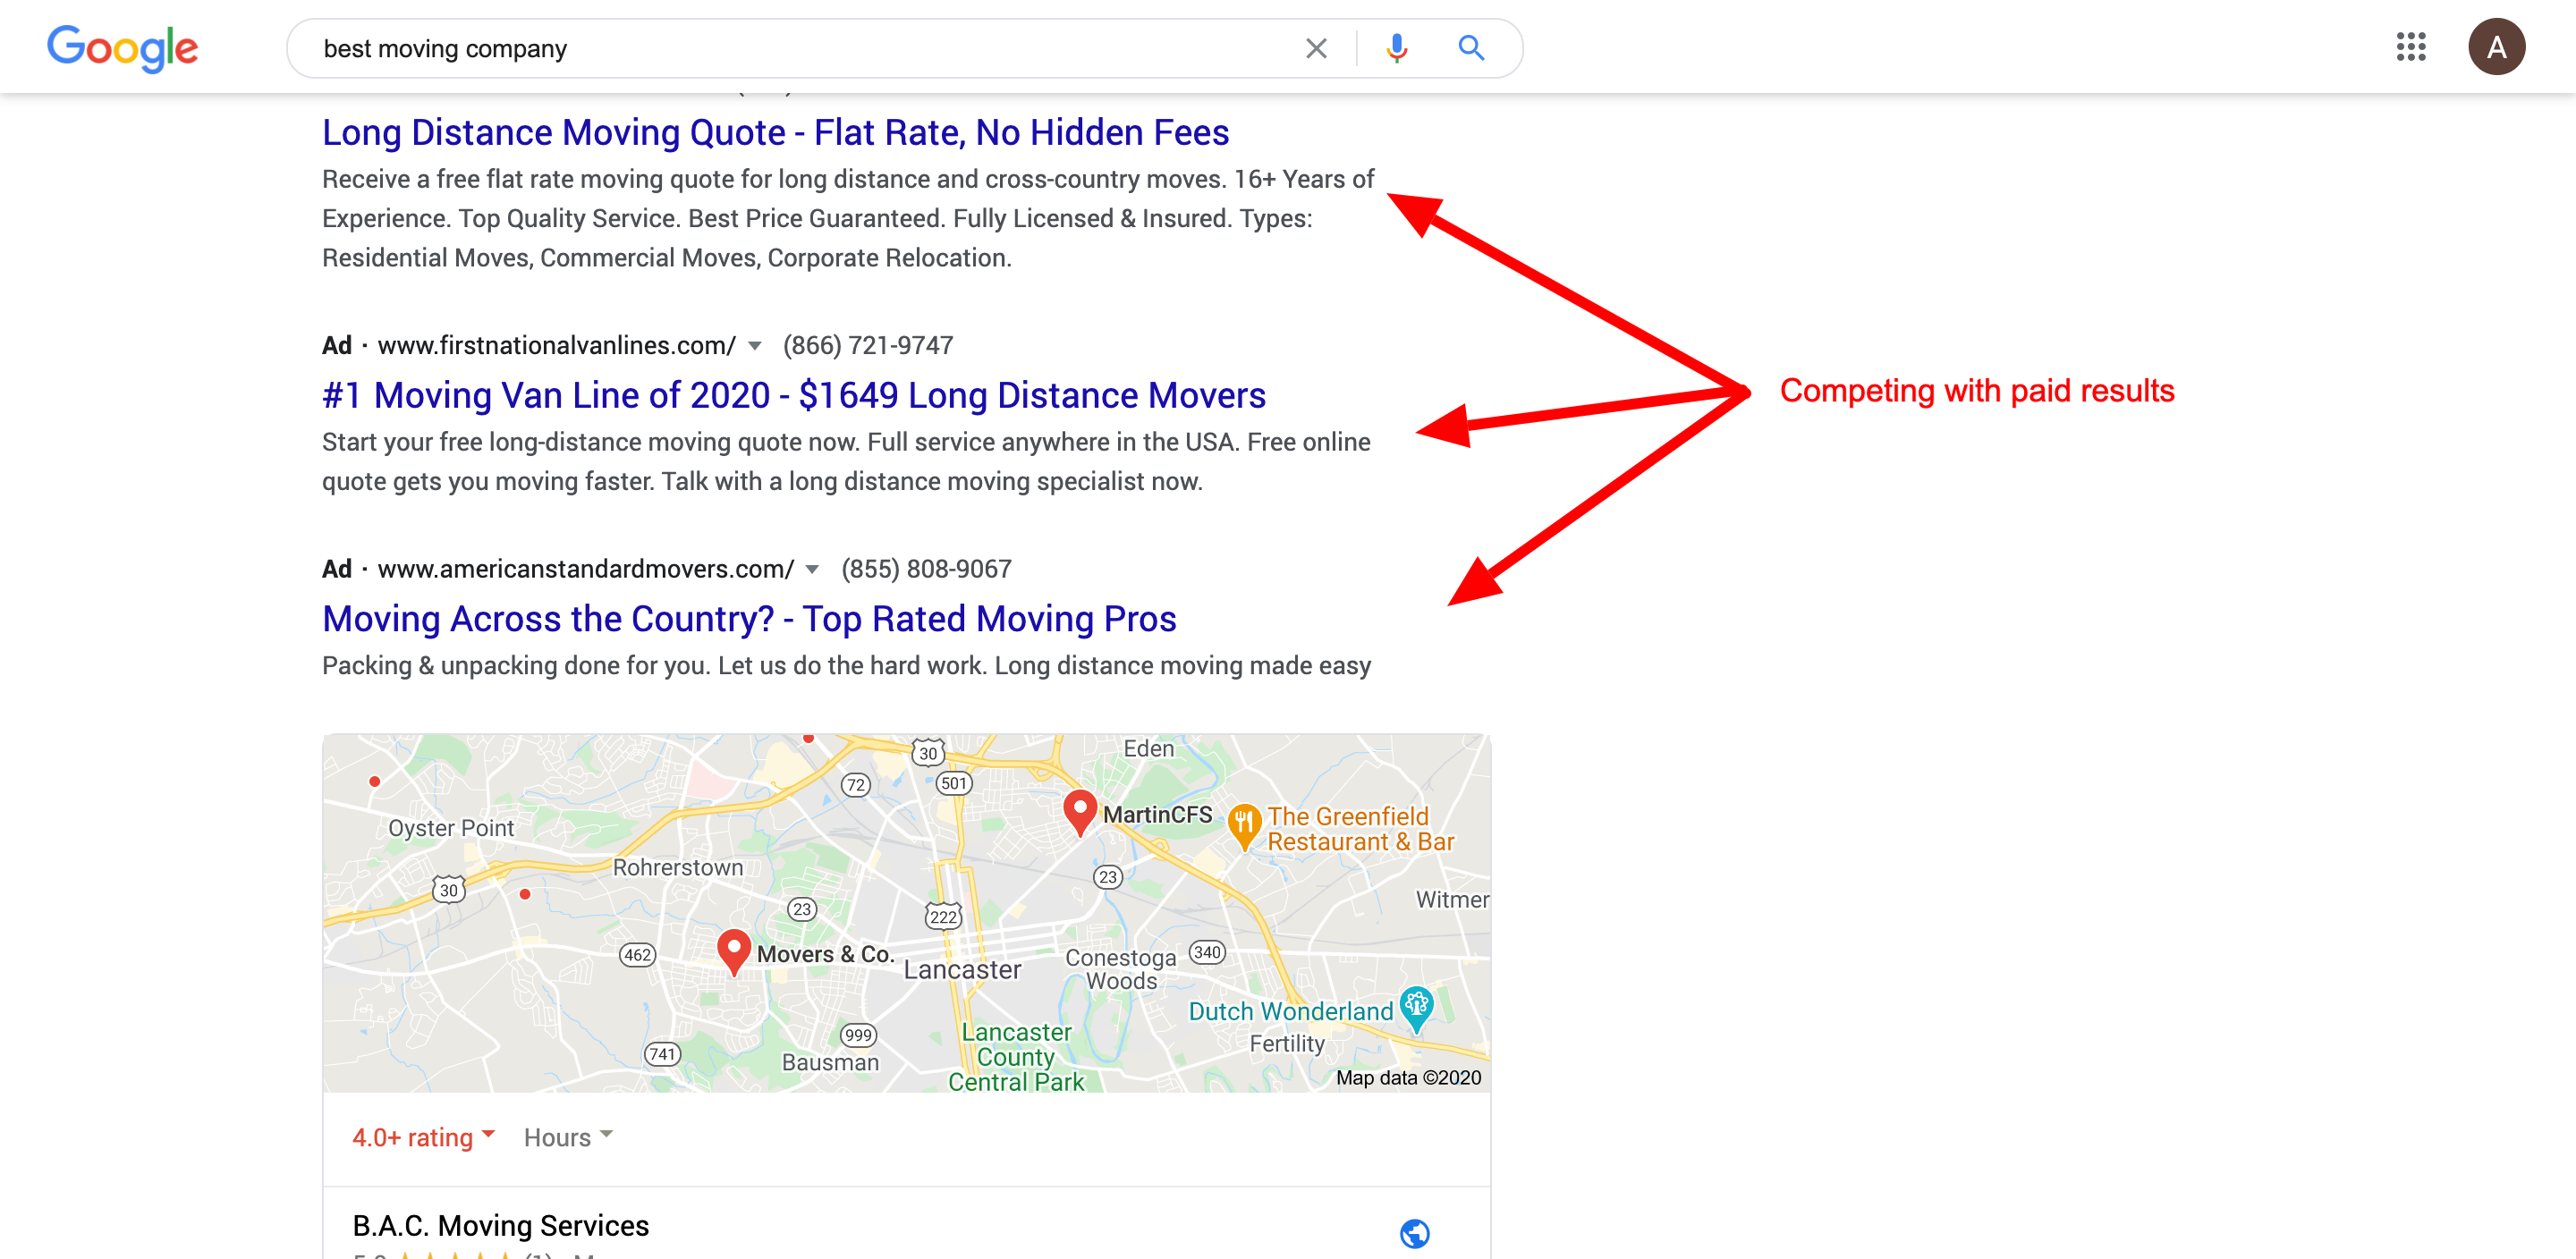 Google search results paid results